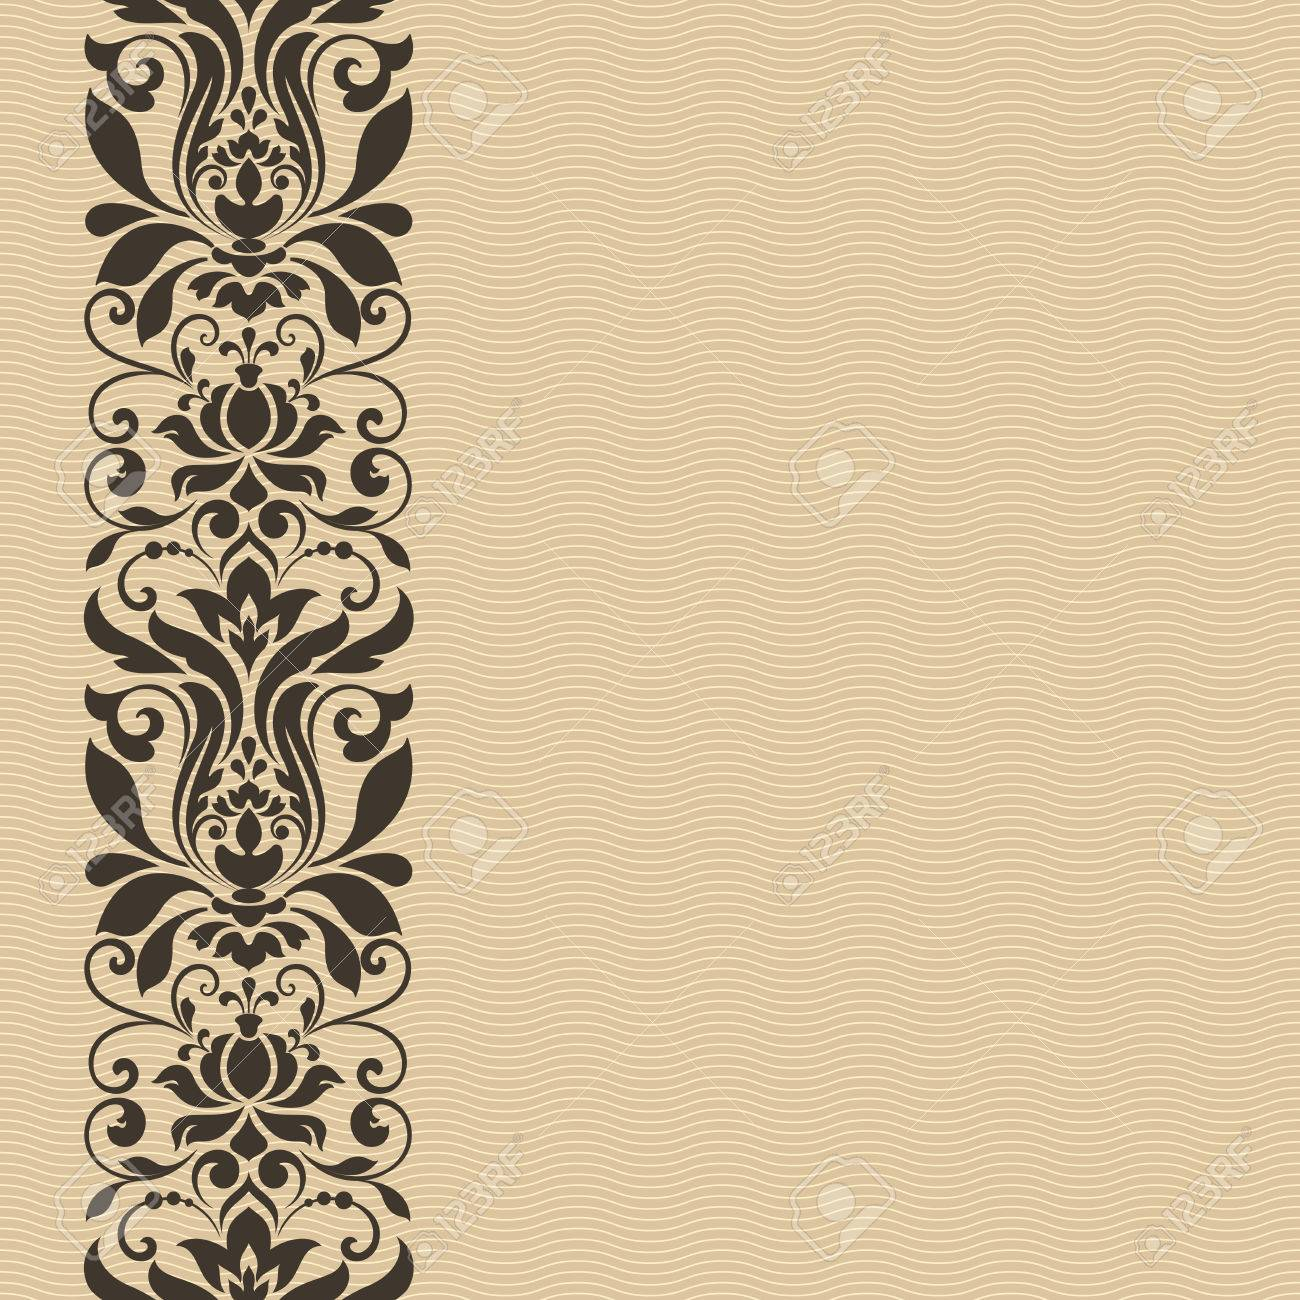 Seamless Vintage Floral Border Vector Card Template Royalty Free